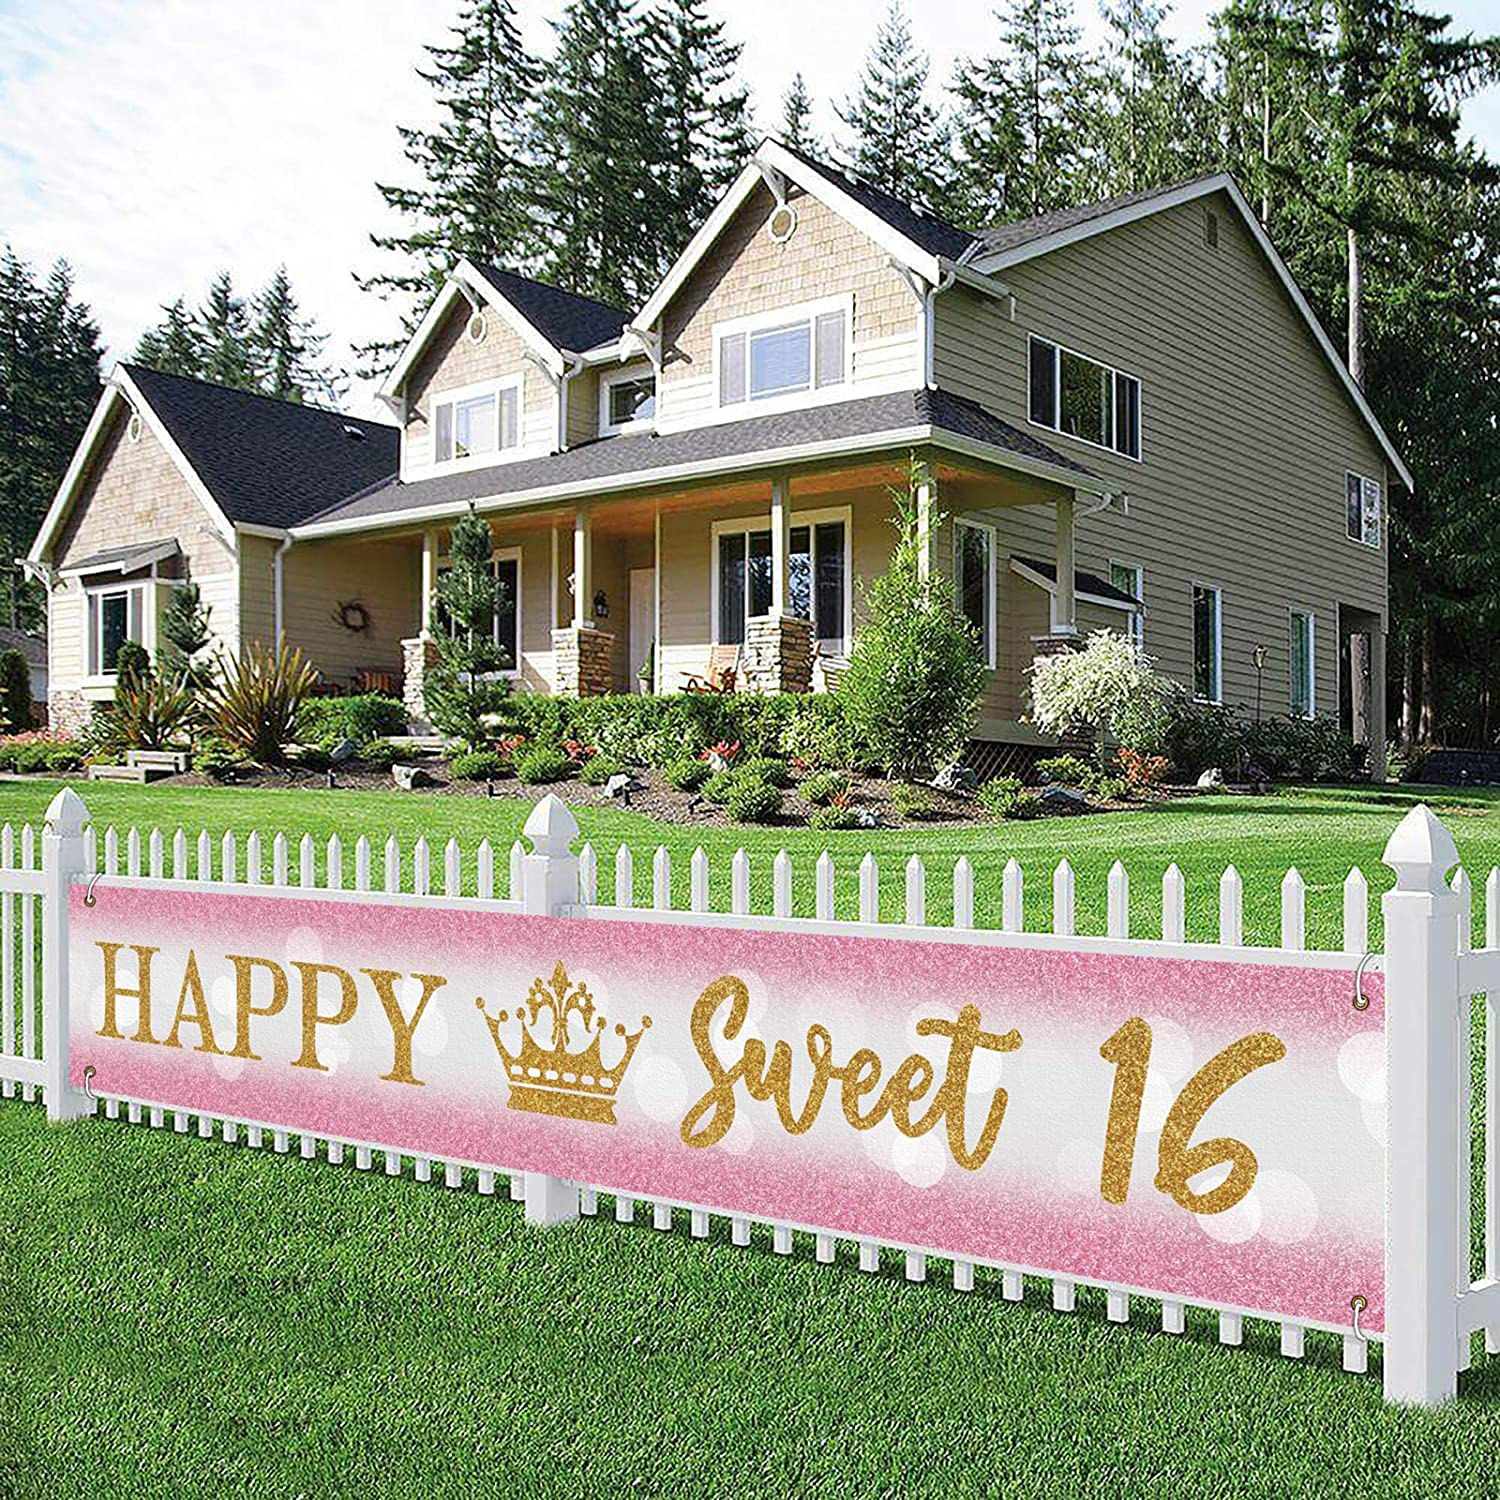 Large Happy Sweet 16 Banner, Happy 16th Birthday Yard Sign, 16th B-Day Lawn Sign, 16th Birthday Party Indoor Outdoor Backdrop 9.8 x 1.6 Feet